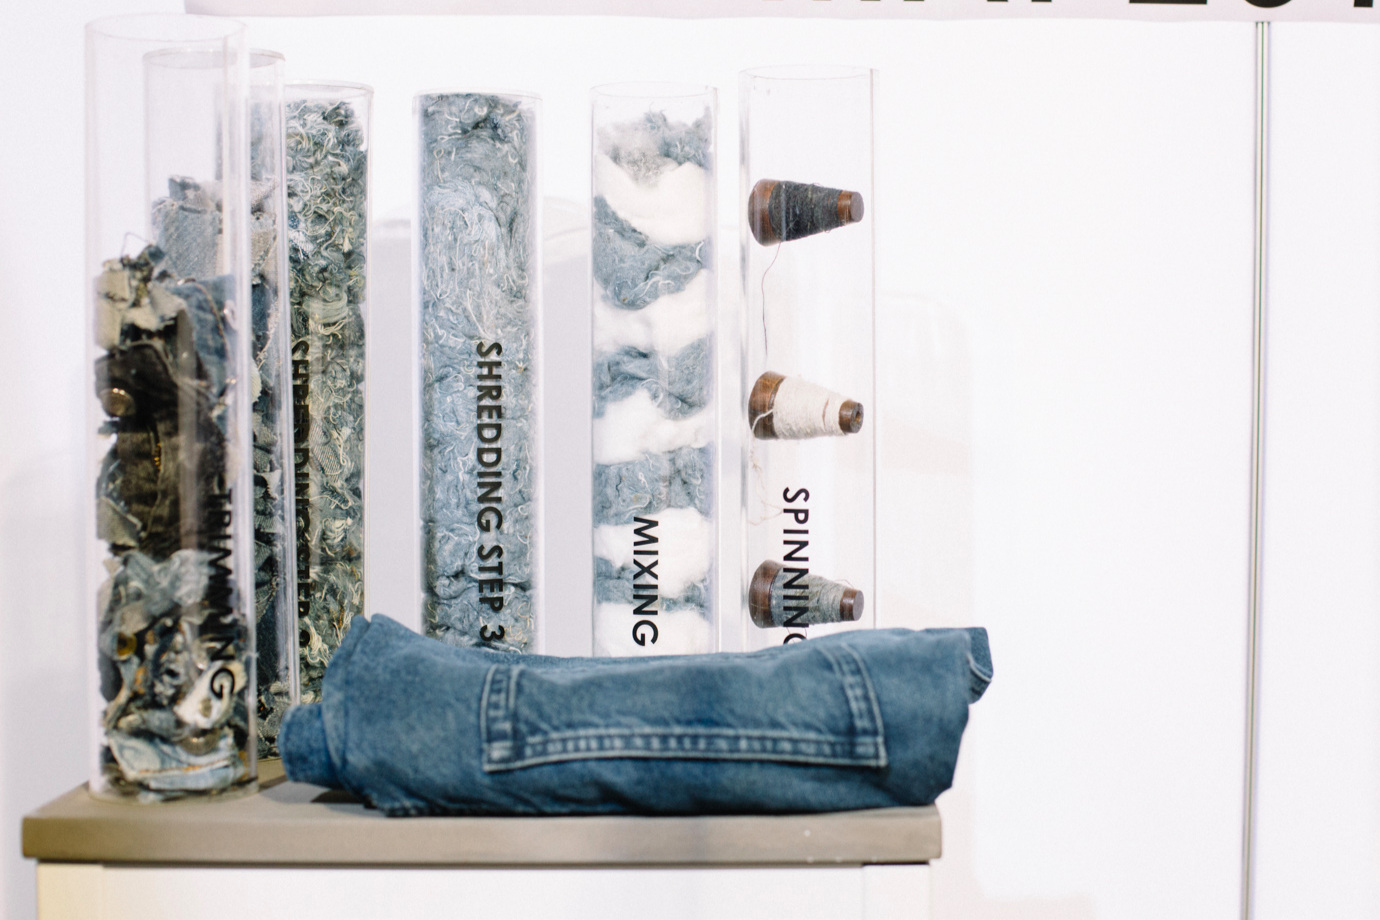 recycled-denim-jeans-cotton.jpg